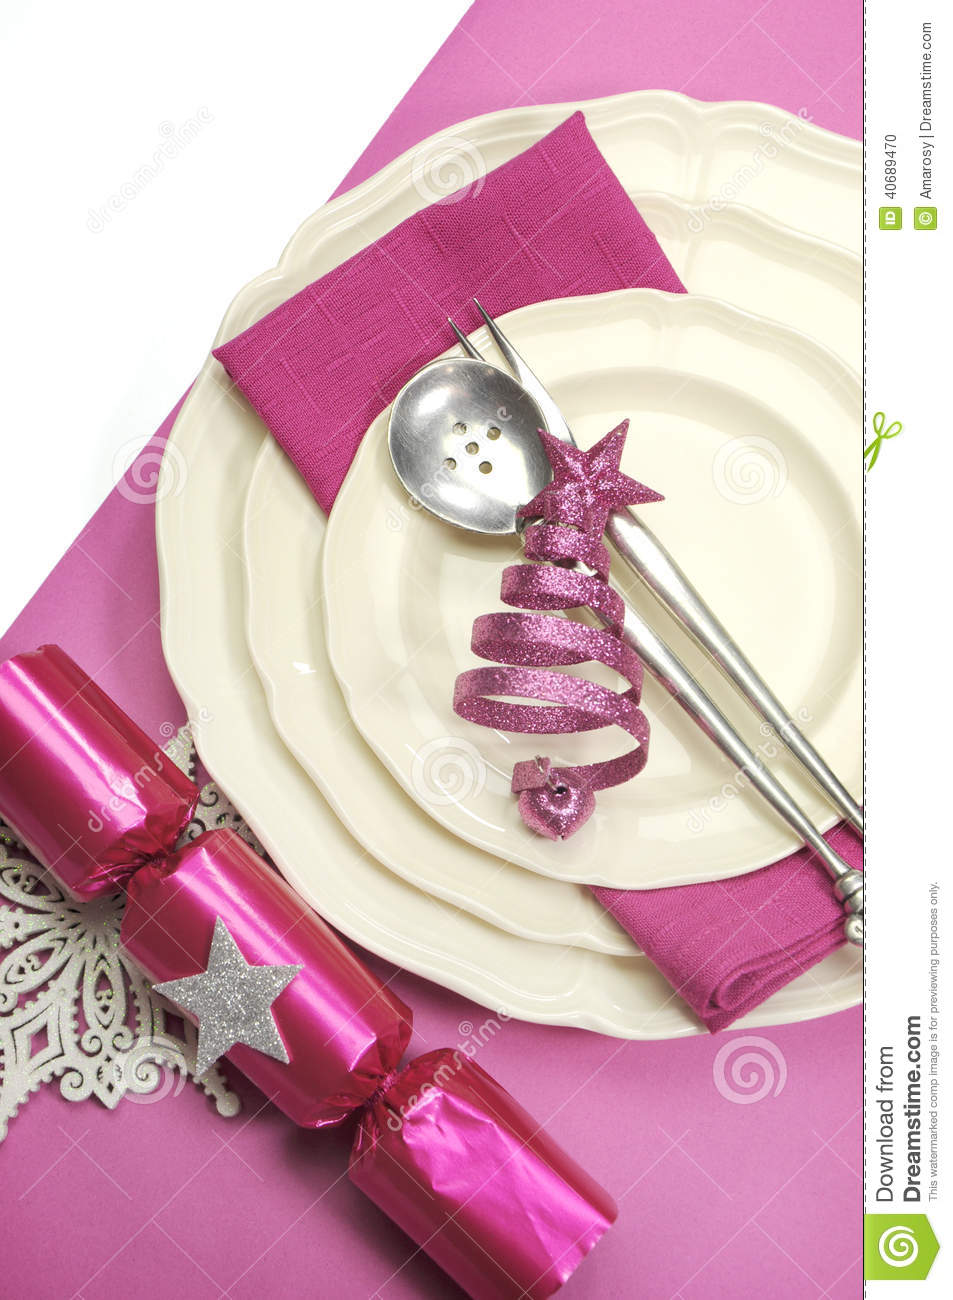 Beautiful Fuchsia Pink Festive Christmas Dining Table  : beautiful fuchsia pink festive christmas dining table place setting vertical happy holiday ornaments decorations 40689470 from www.dreamstime.com size 953 x 1300 jpeg 145kB